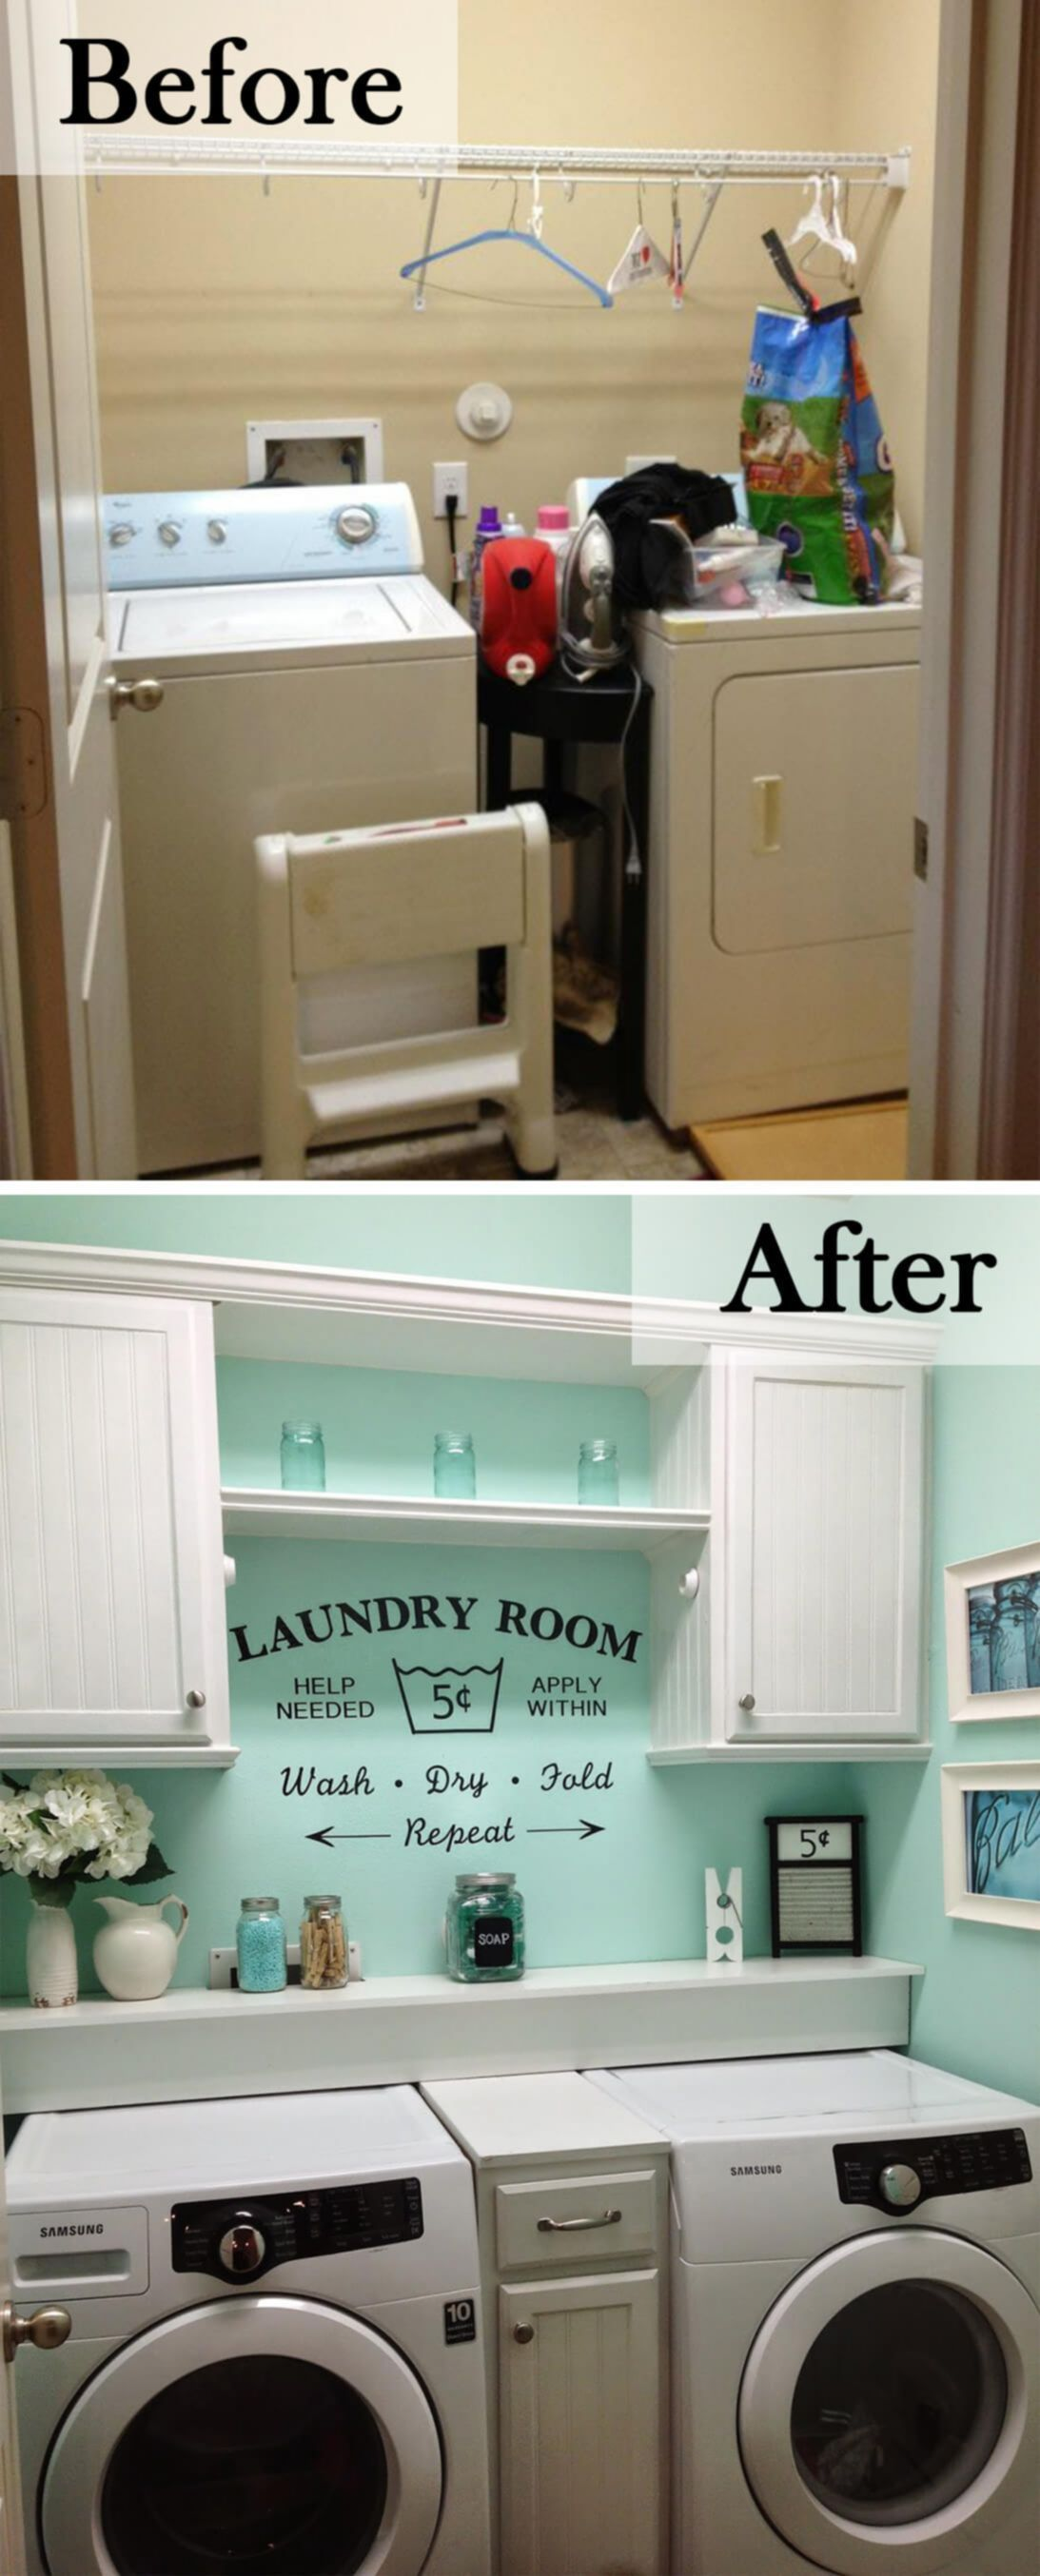 Photo of Top 25 Small Laundry Room Makeovers Ideas With Before and After Picture